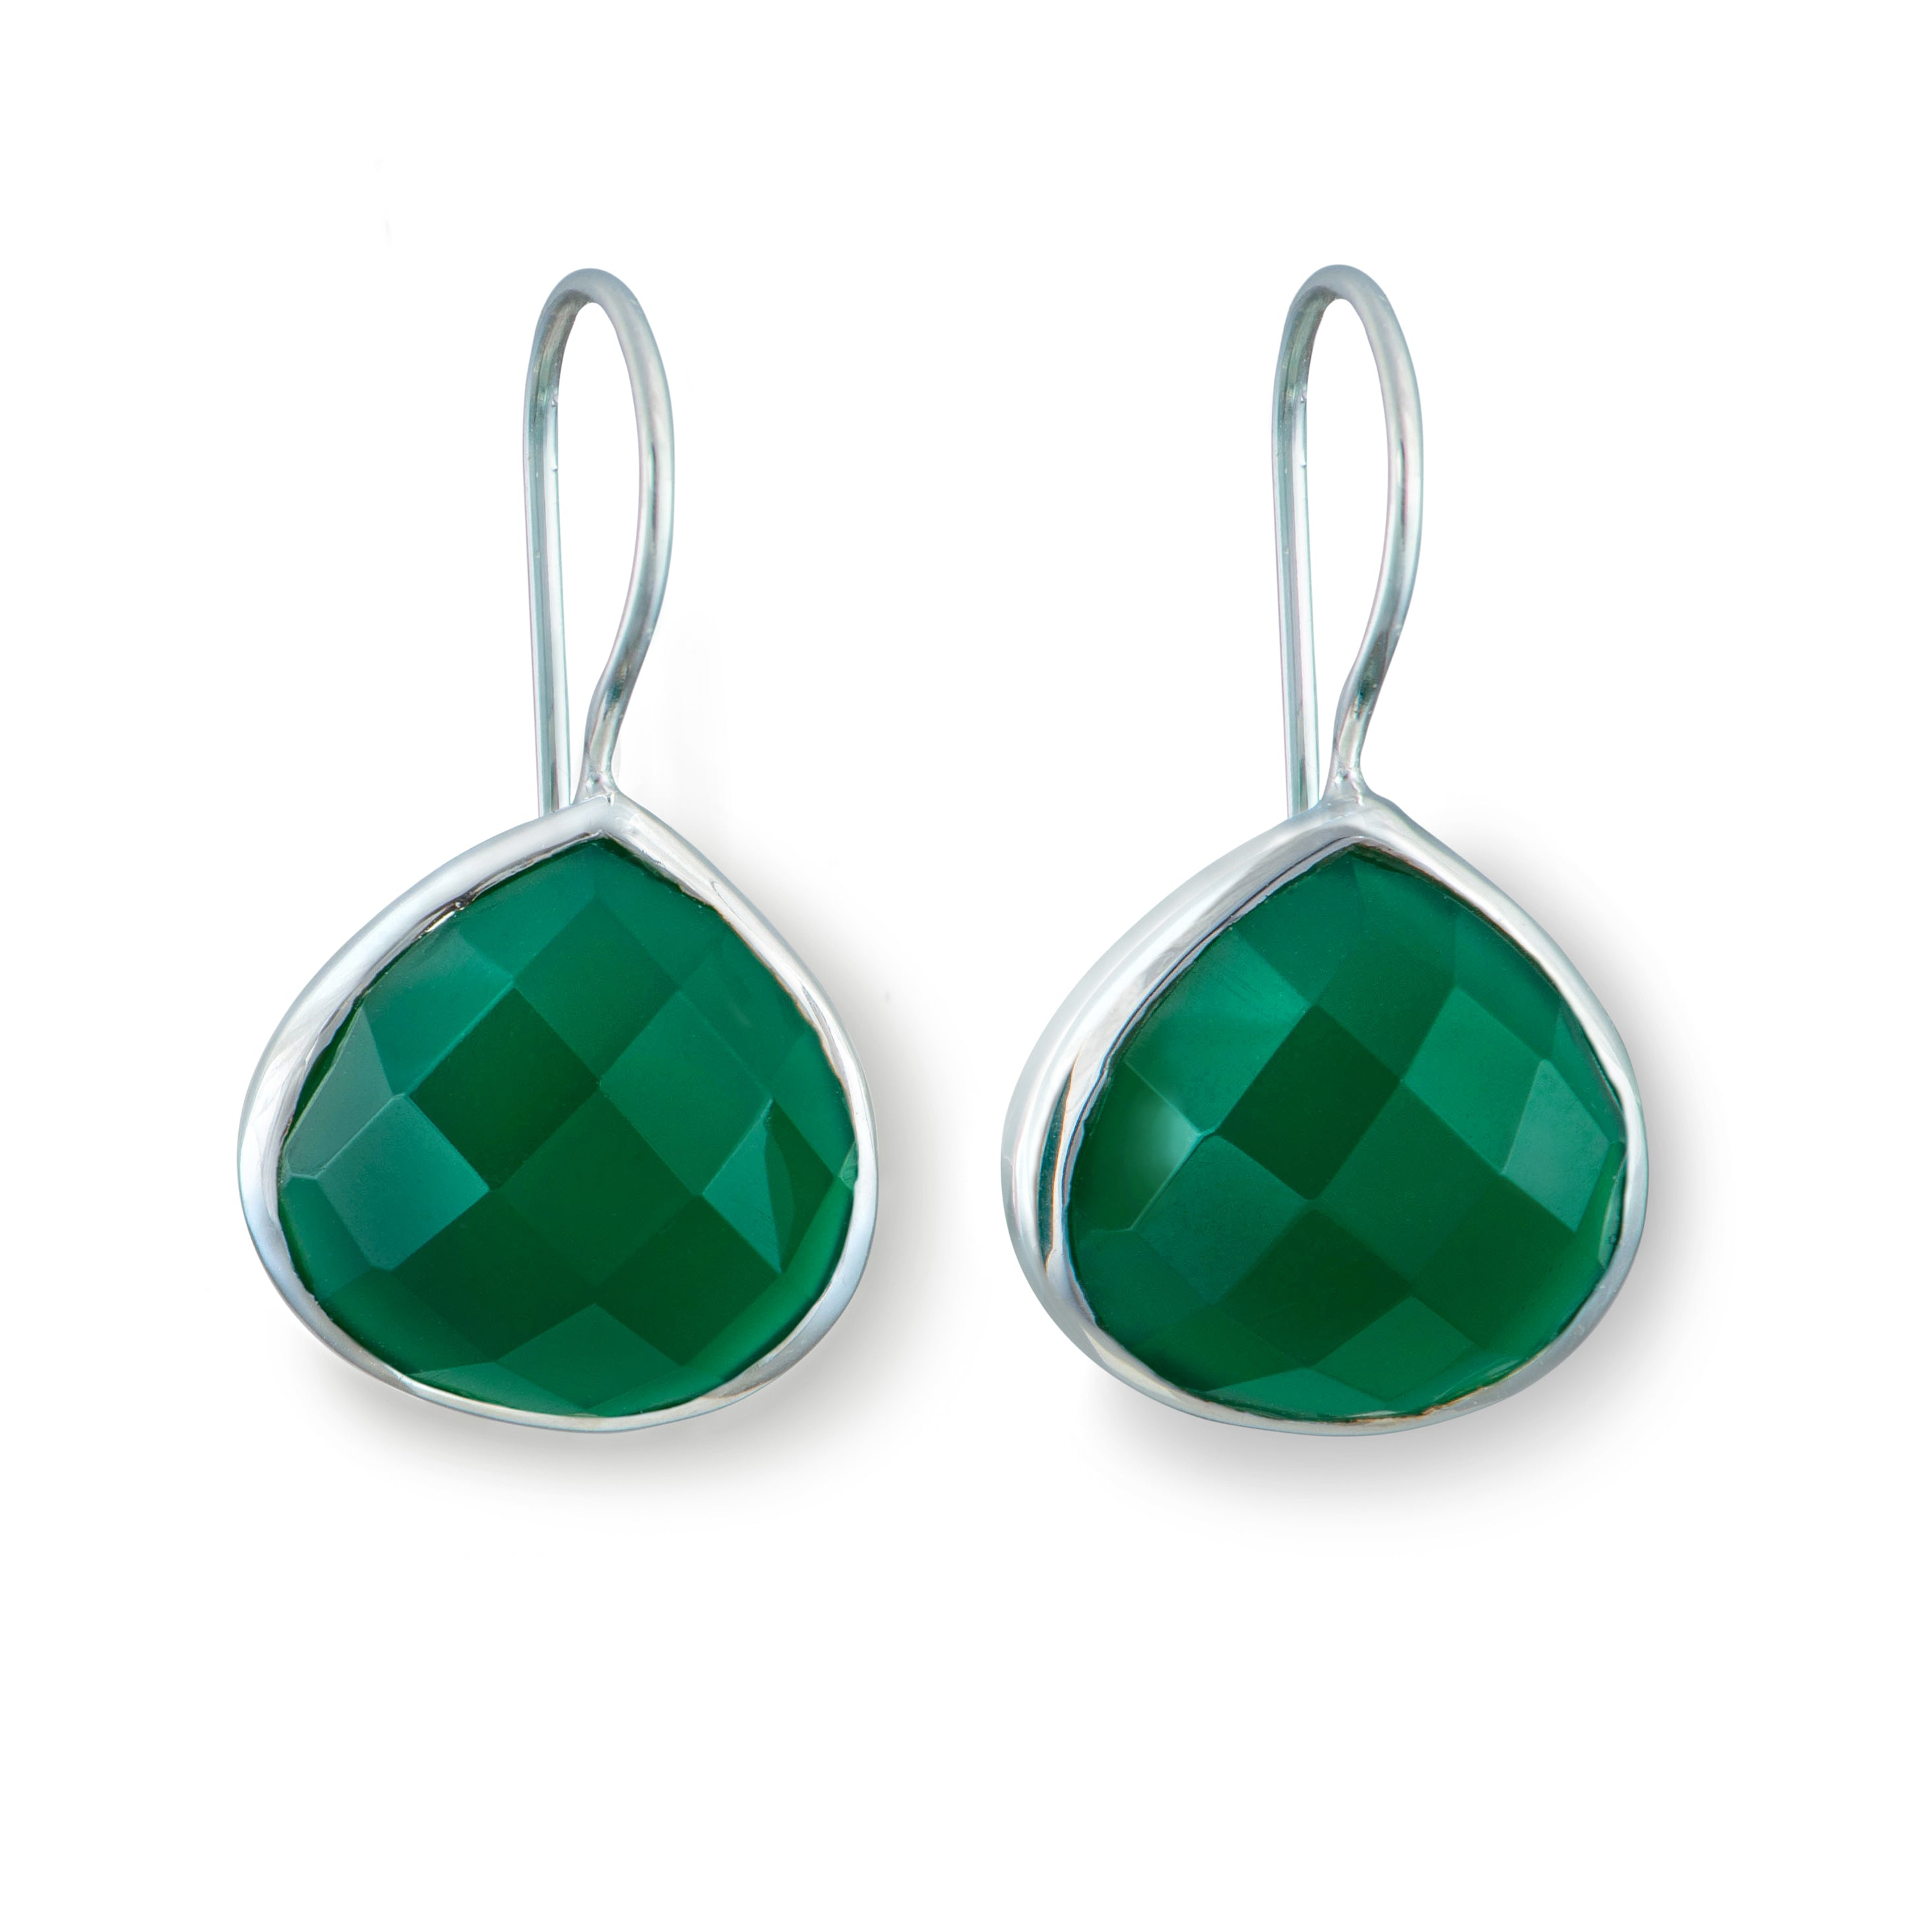 Green Onyx Gemstone Sterling Silver Teardrop Earrings